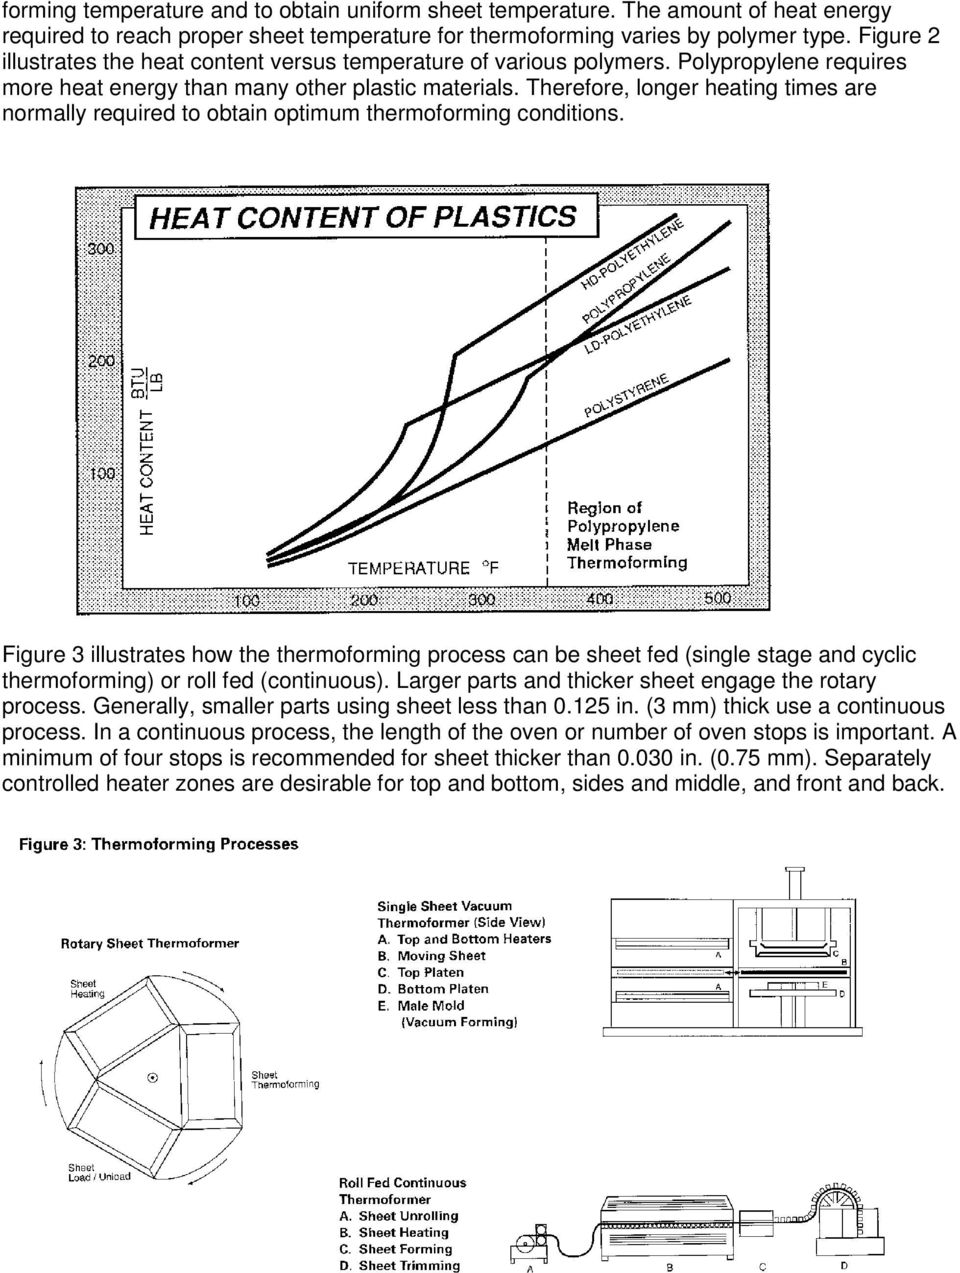 Therefore, longer heating times are normally required to obtain optimum thermoforming conditions.